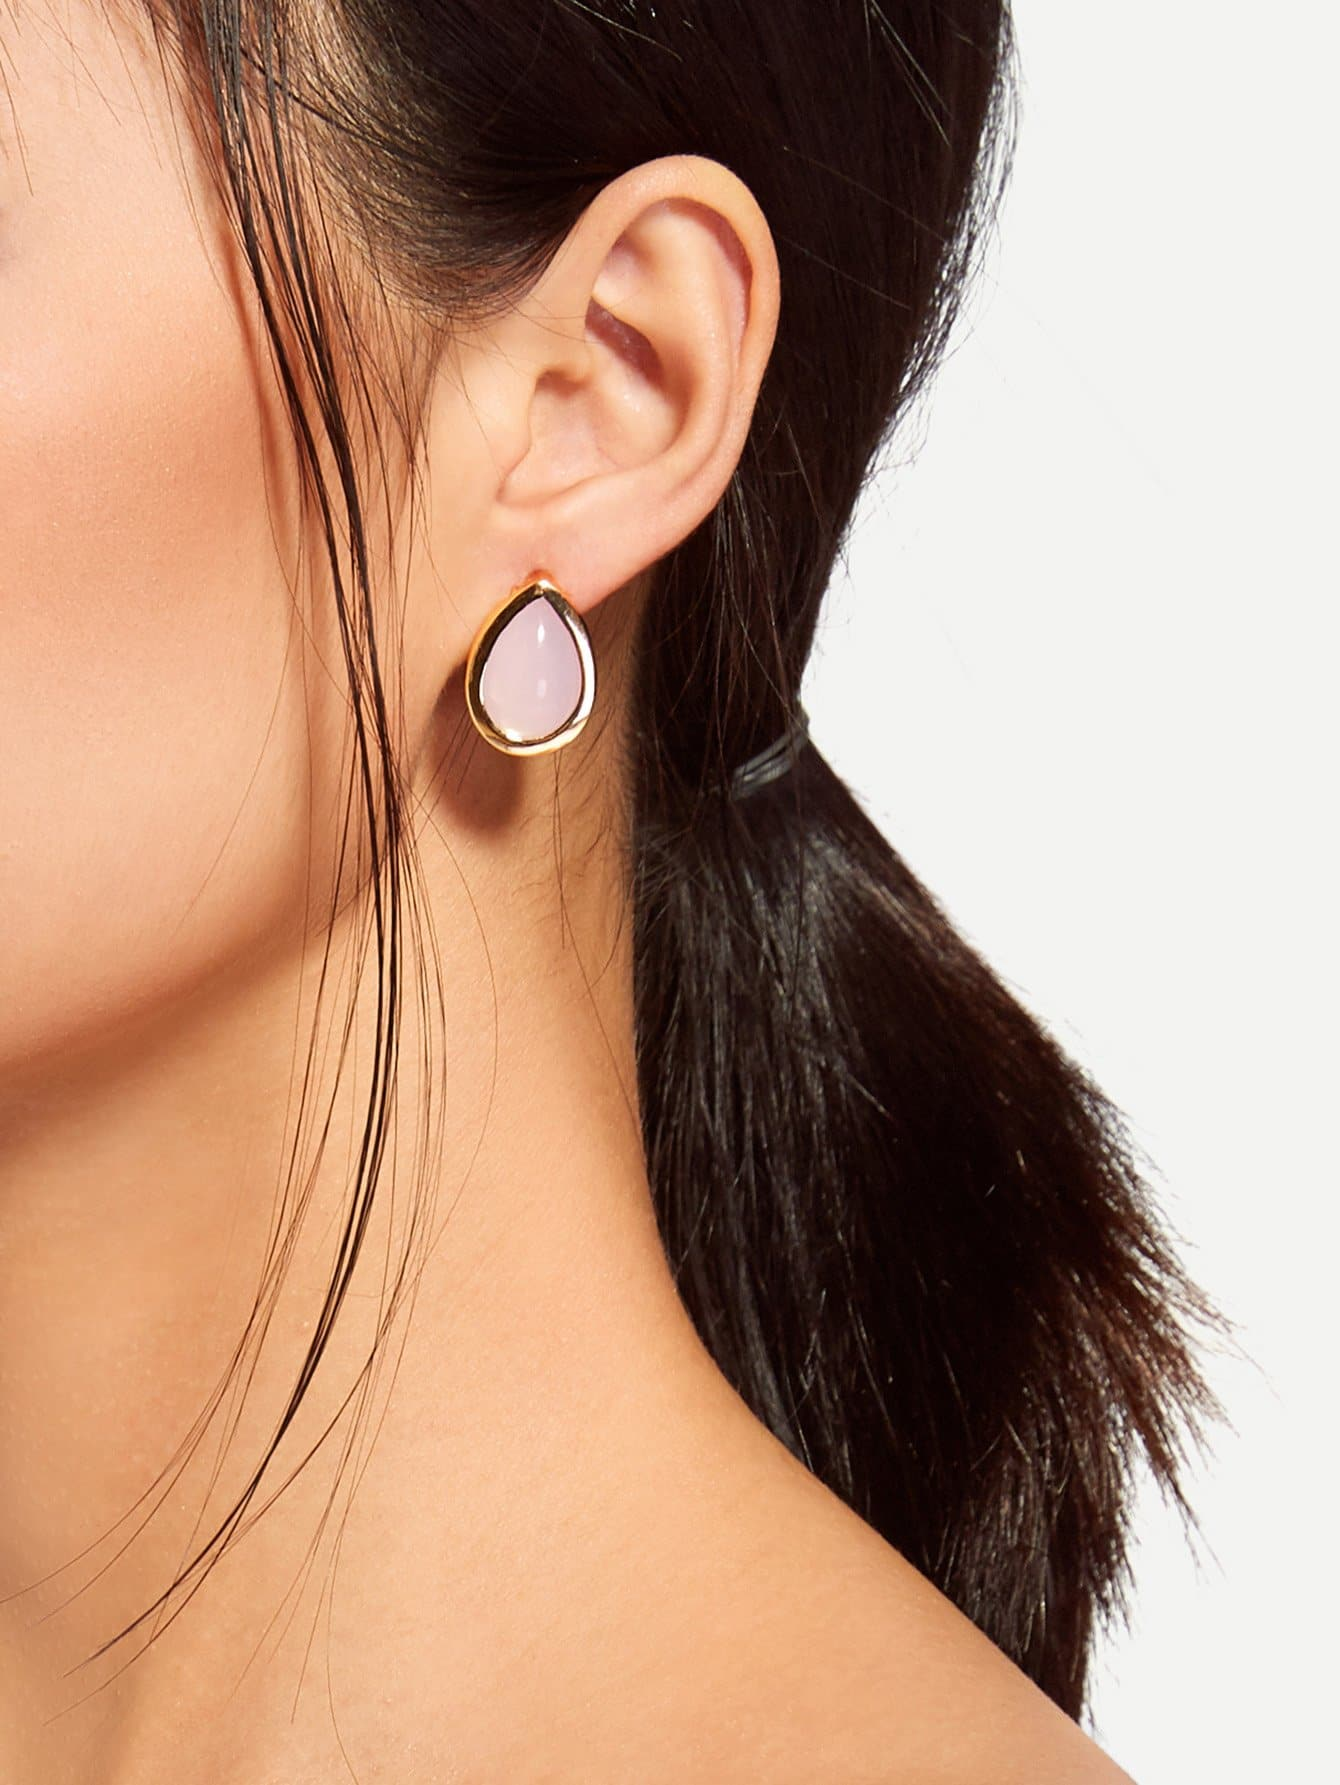 Water Drop Shaped Stud Earrings hollow water drop shaped drop earrings